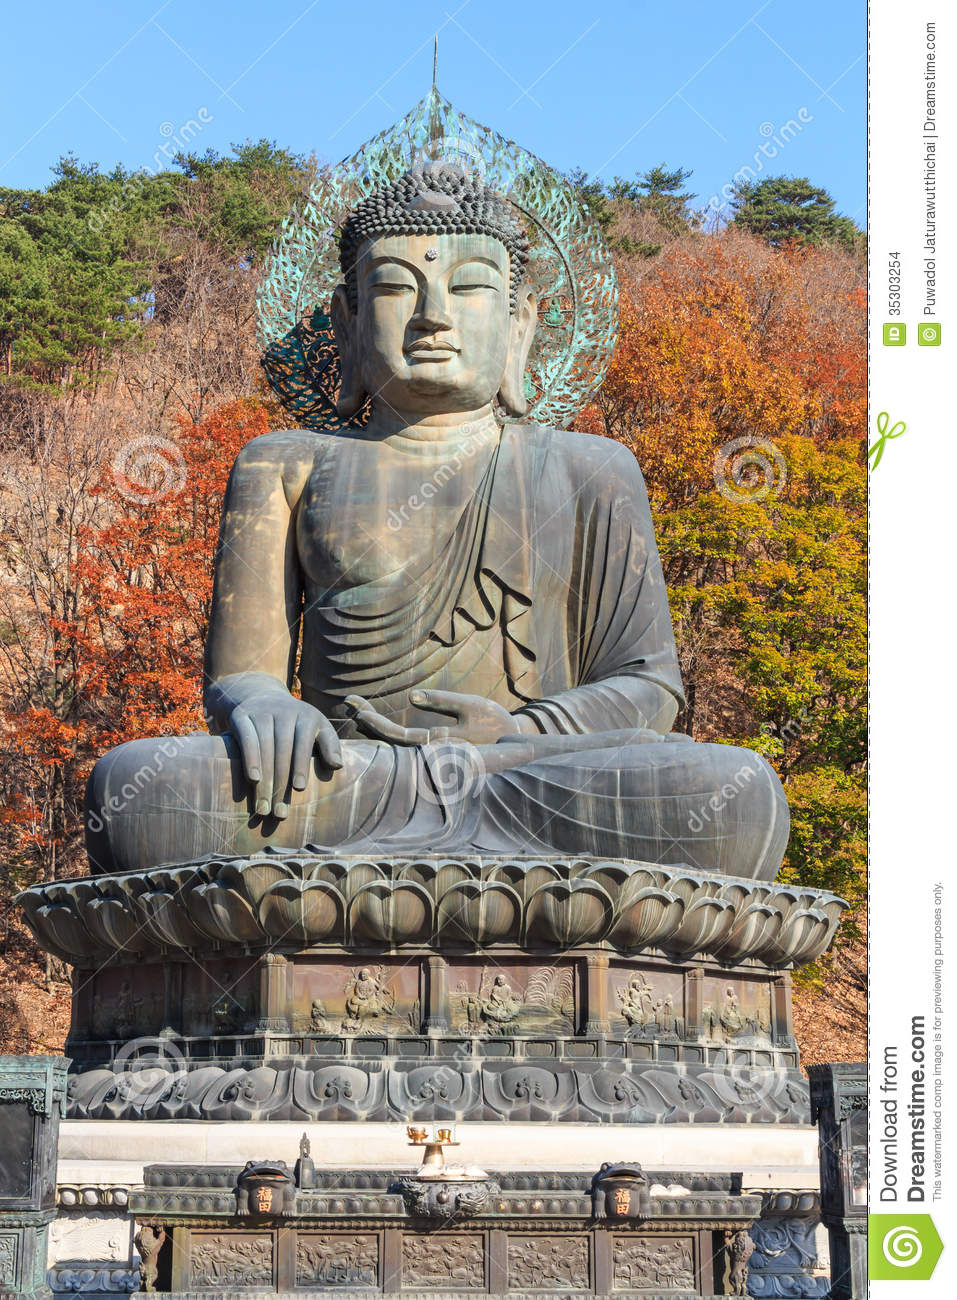 bethel park buddhist dating site The single men and single women who use our site are looking for long term love ,  for over a century, schenley park has been a pittsburgh dating institution.